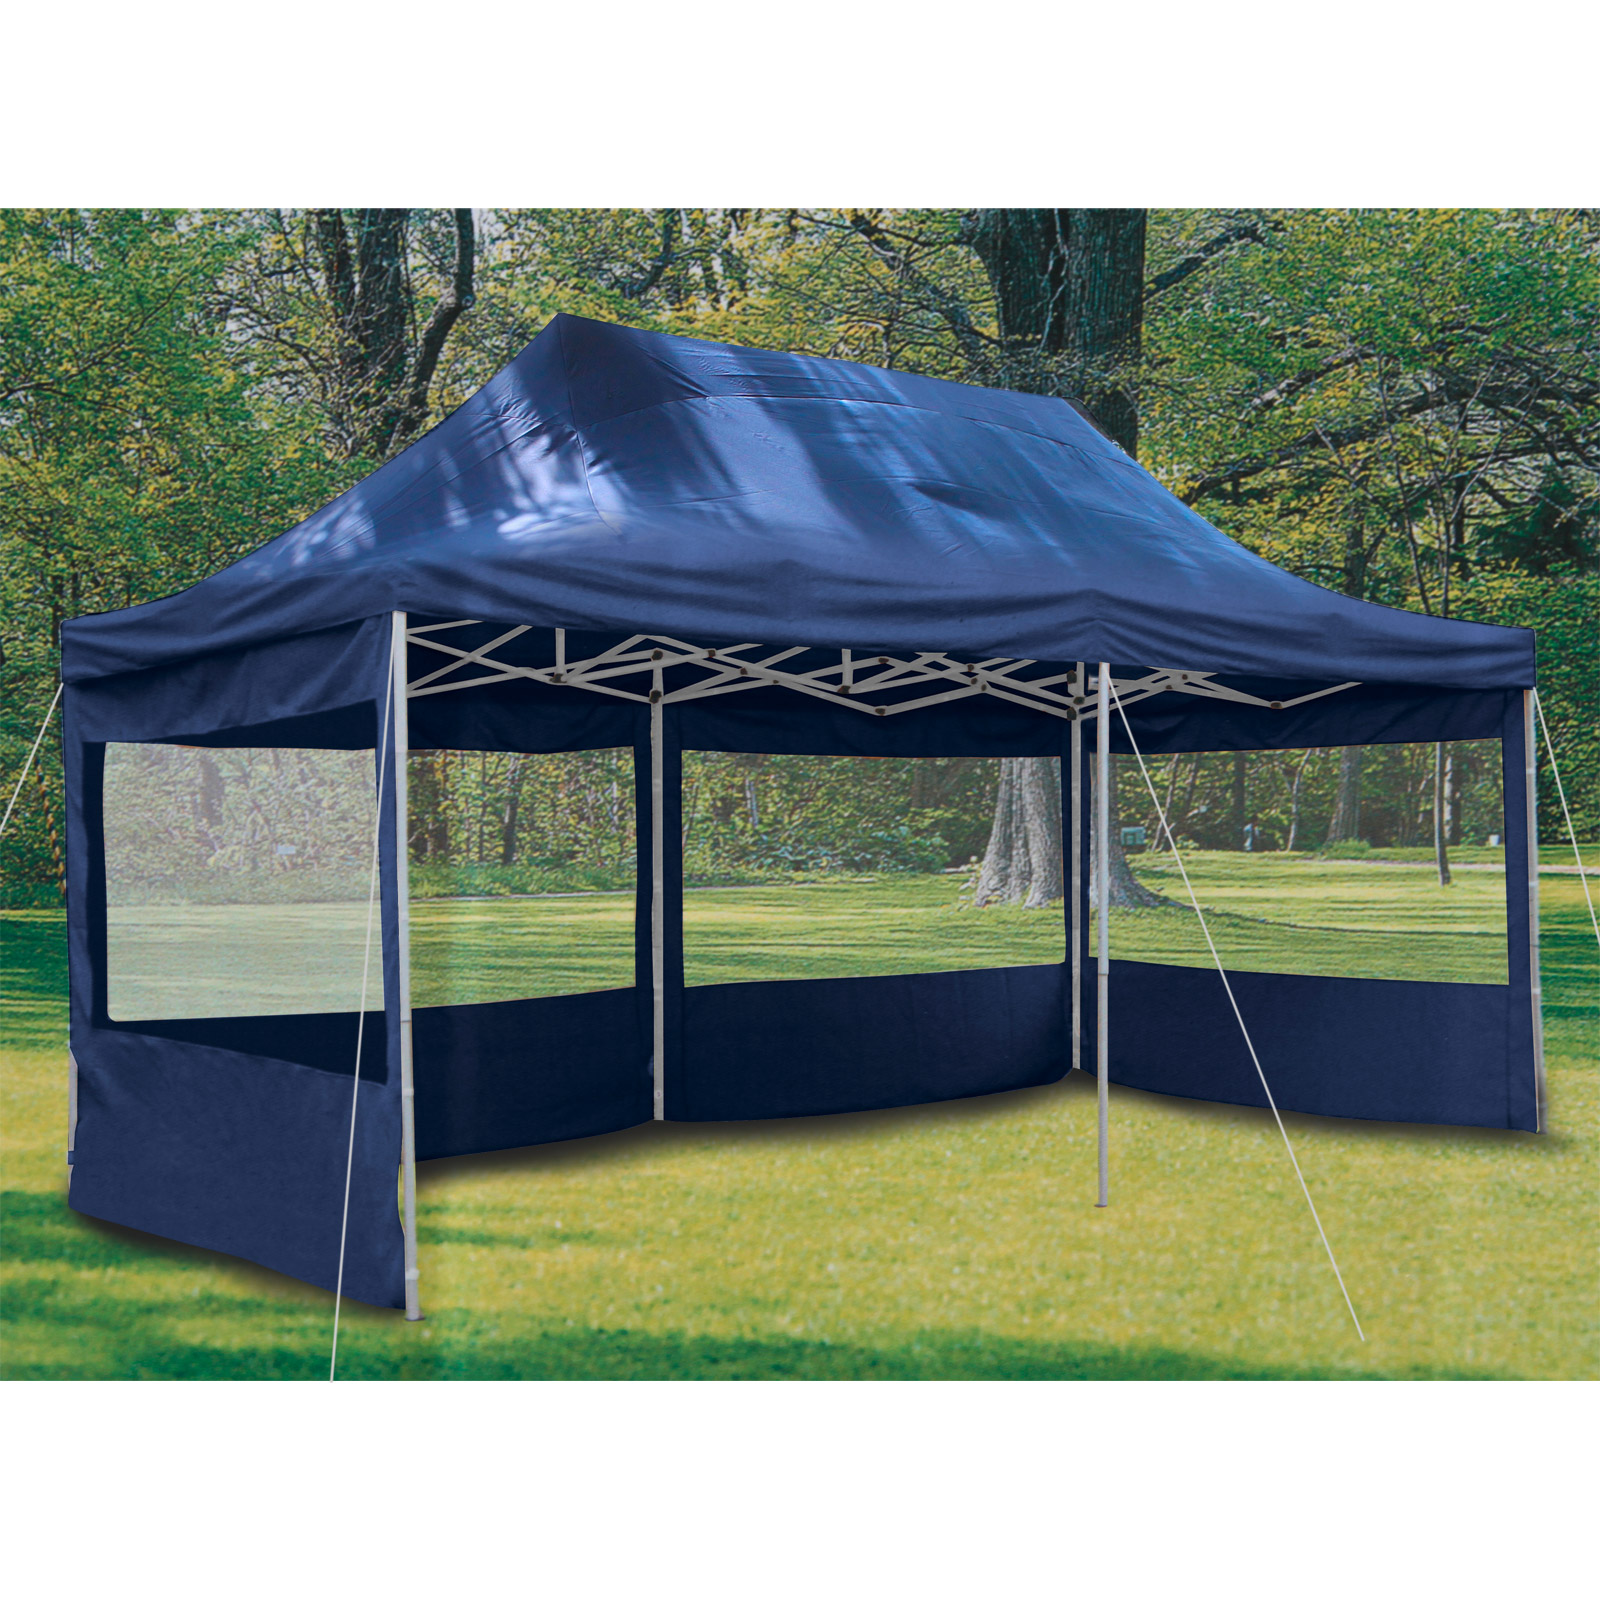 profizelt24 party zelt festzelt 3x6m garten pavillon zelt mit fenstern hochwertige 500g m pvc. Black Bedroom Furniture Sets. Home Design Ideas